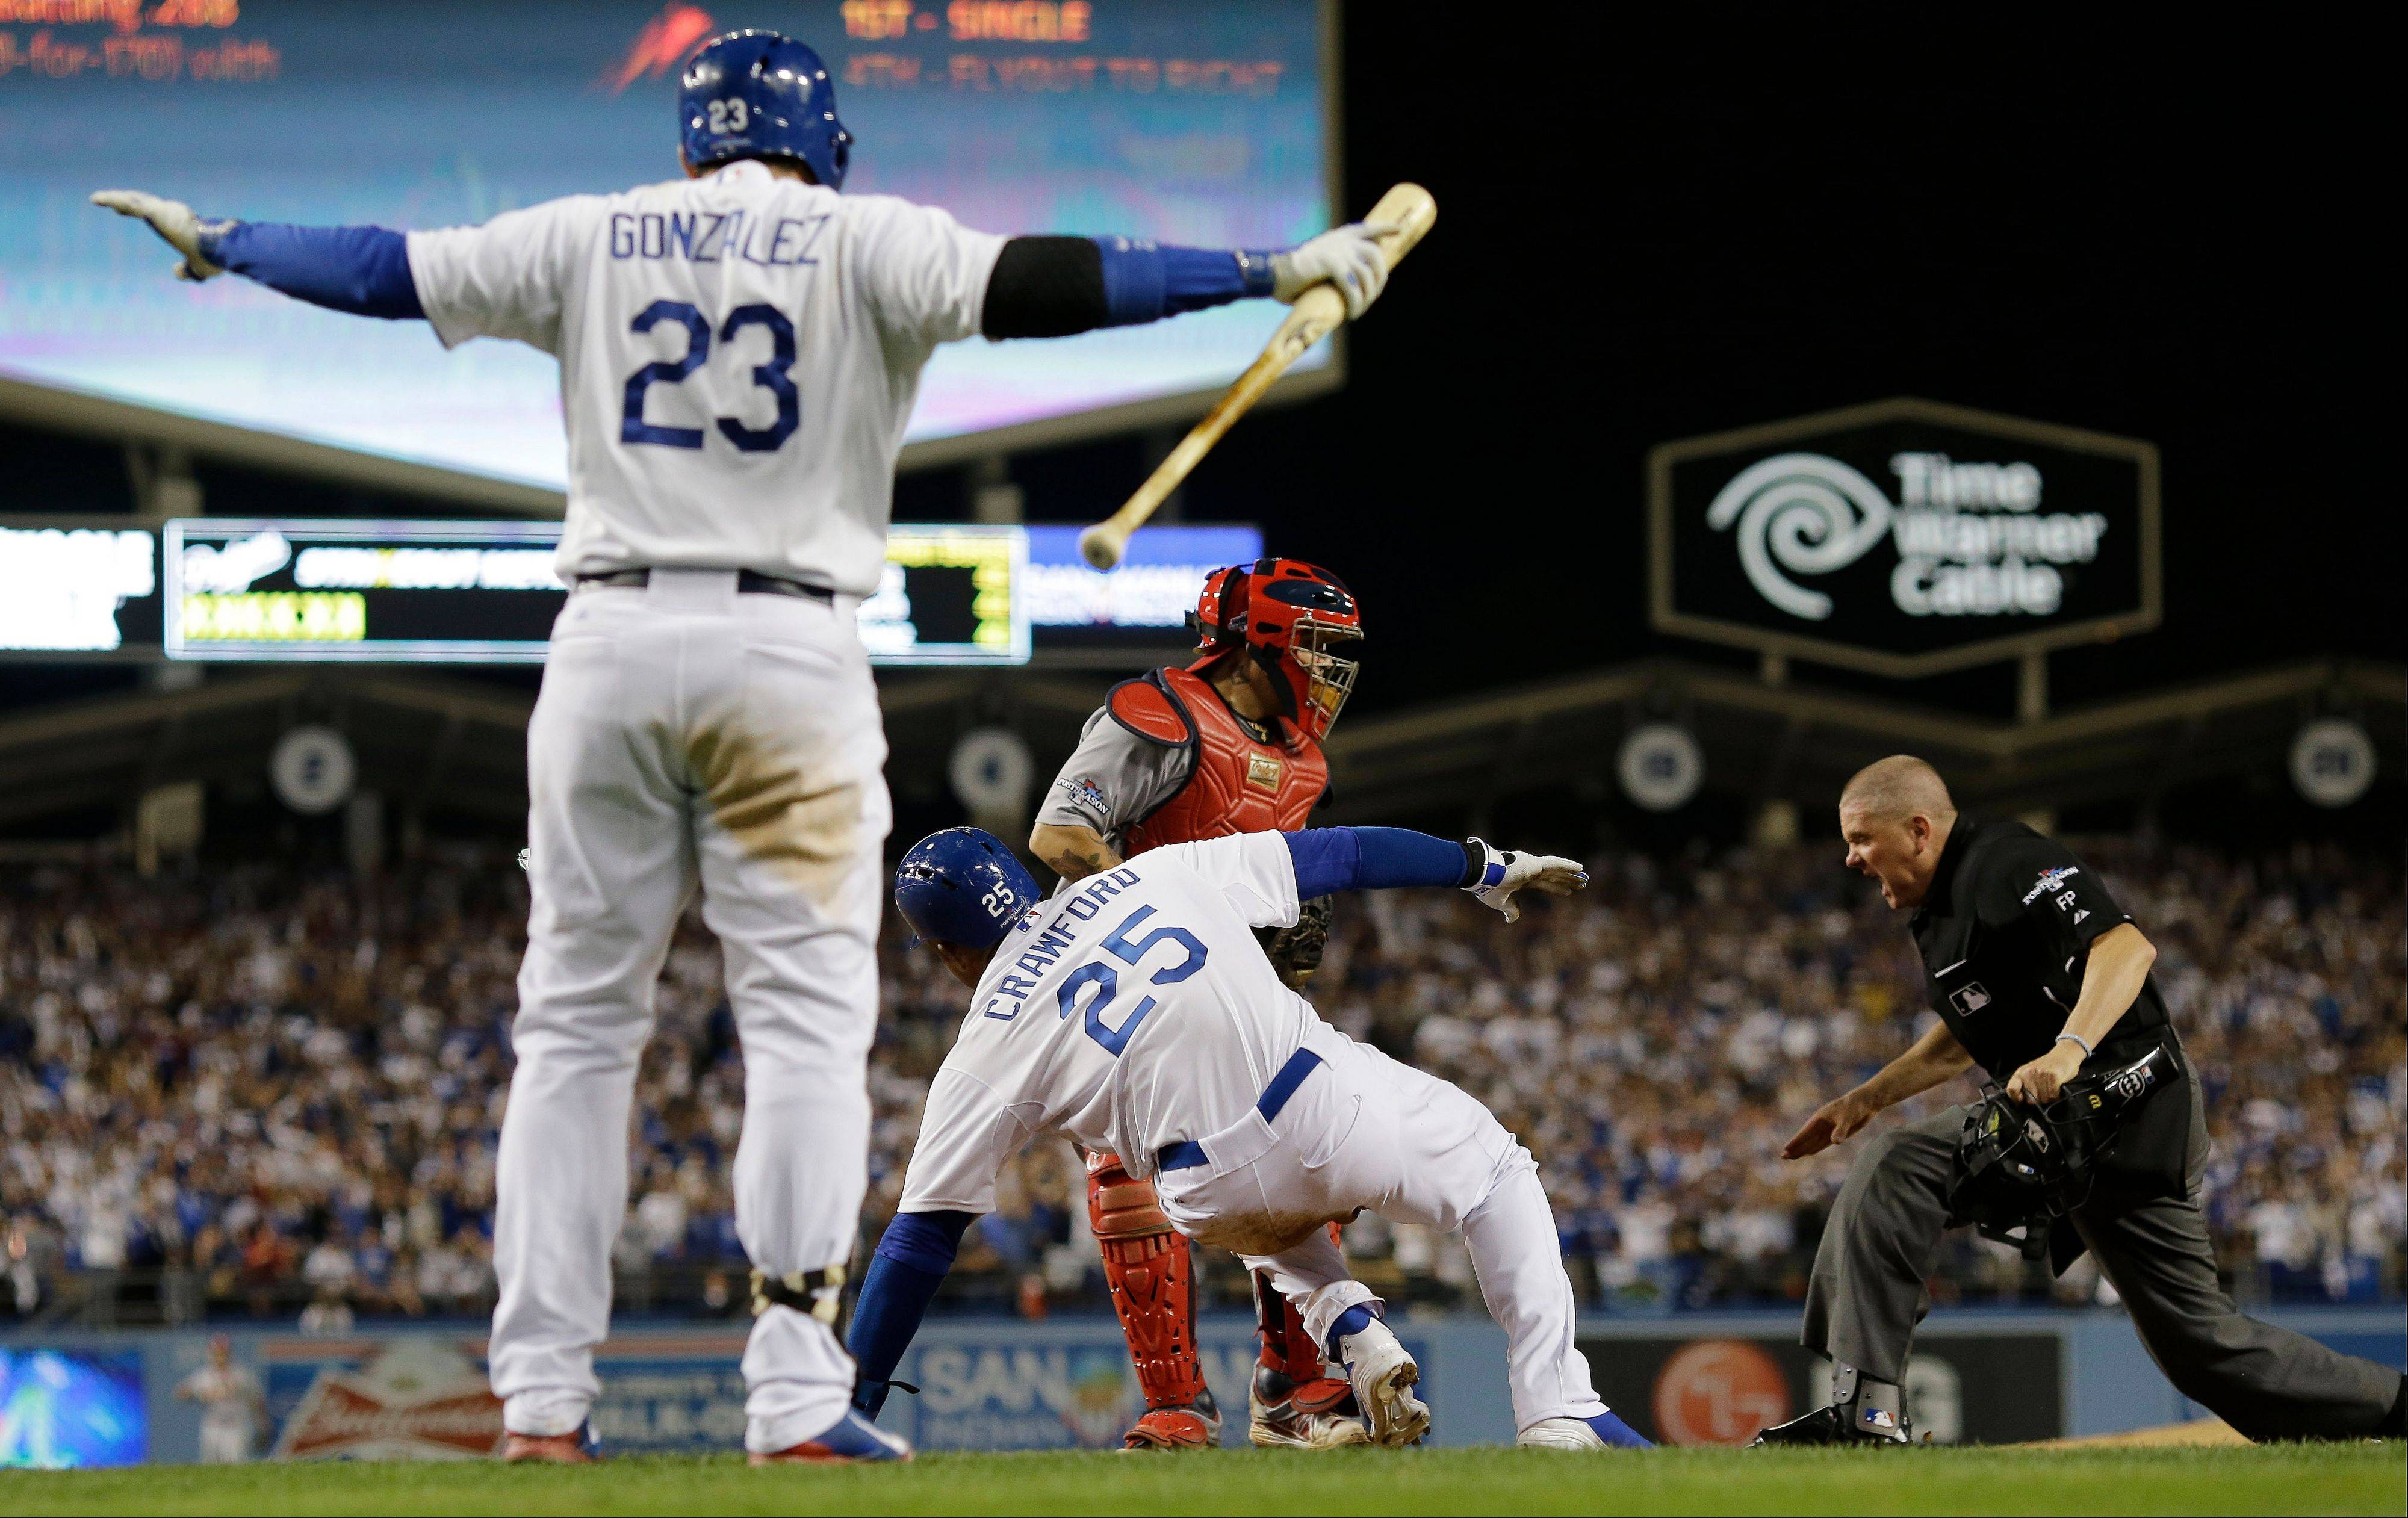 Los Angeles Dodgers� Adrian Gonzalez (23) reacts as Carl Crawford slides safely past St. Louis Cardinals catcher Yadier Molina during the eighth inning of Game 3 of the National League baseball championship series Monday in Los Angeles.